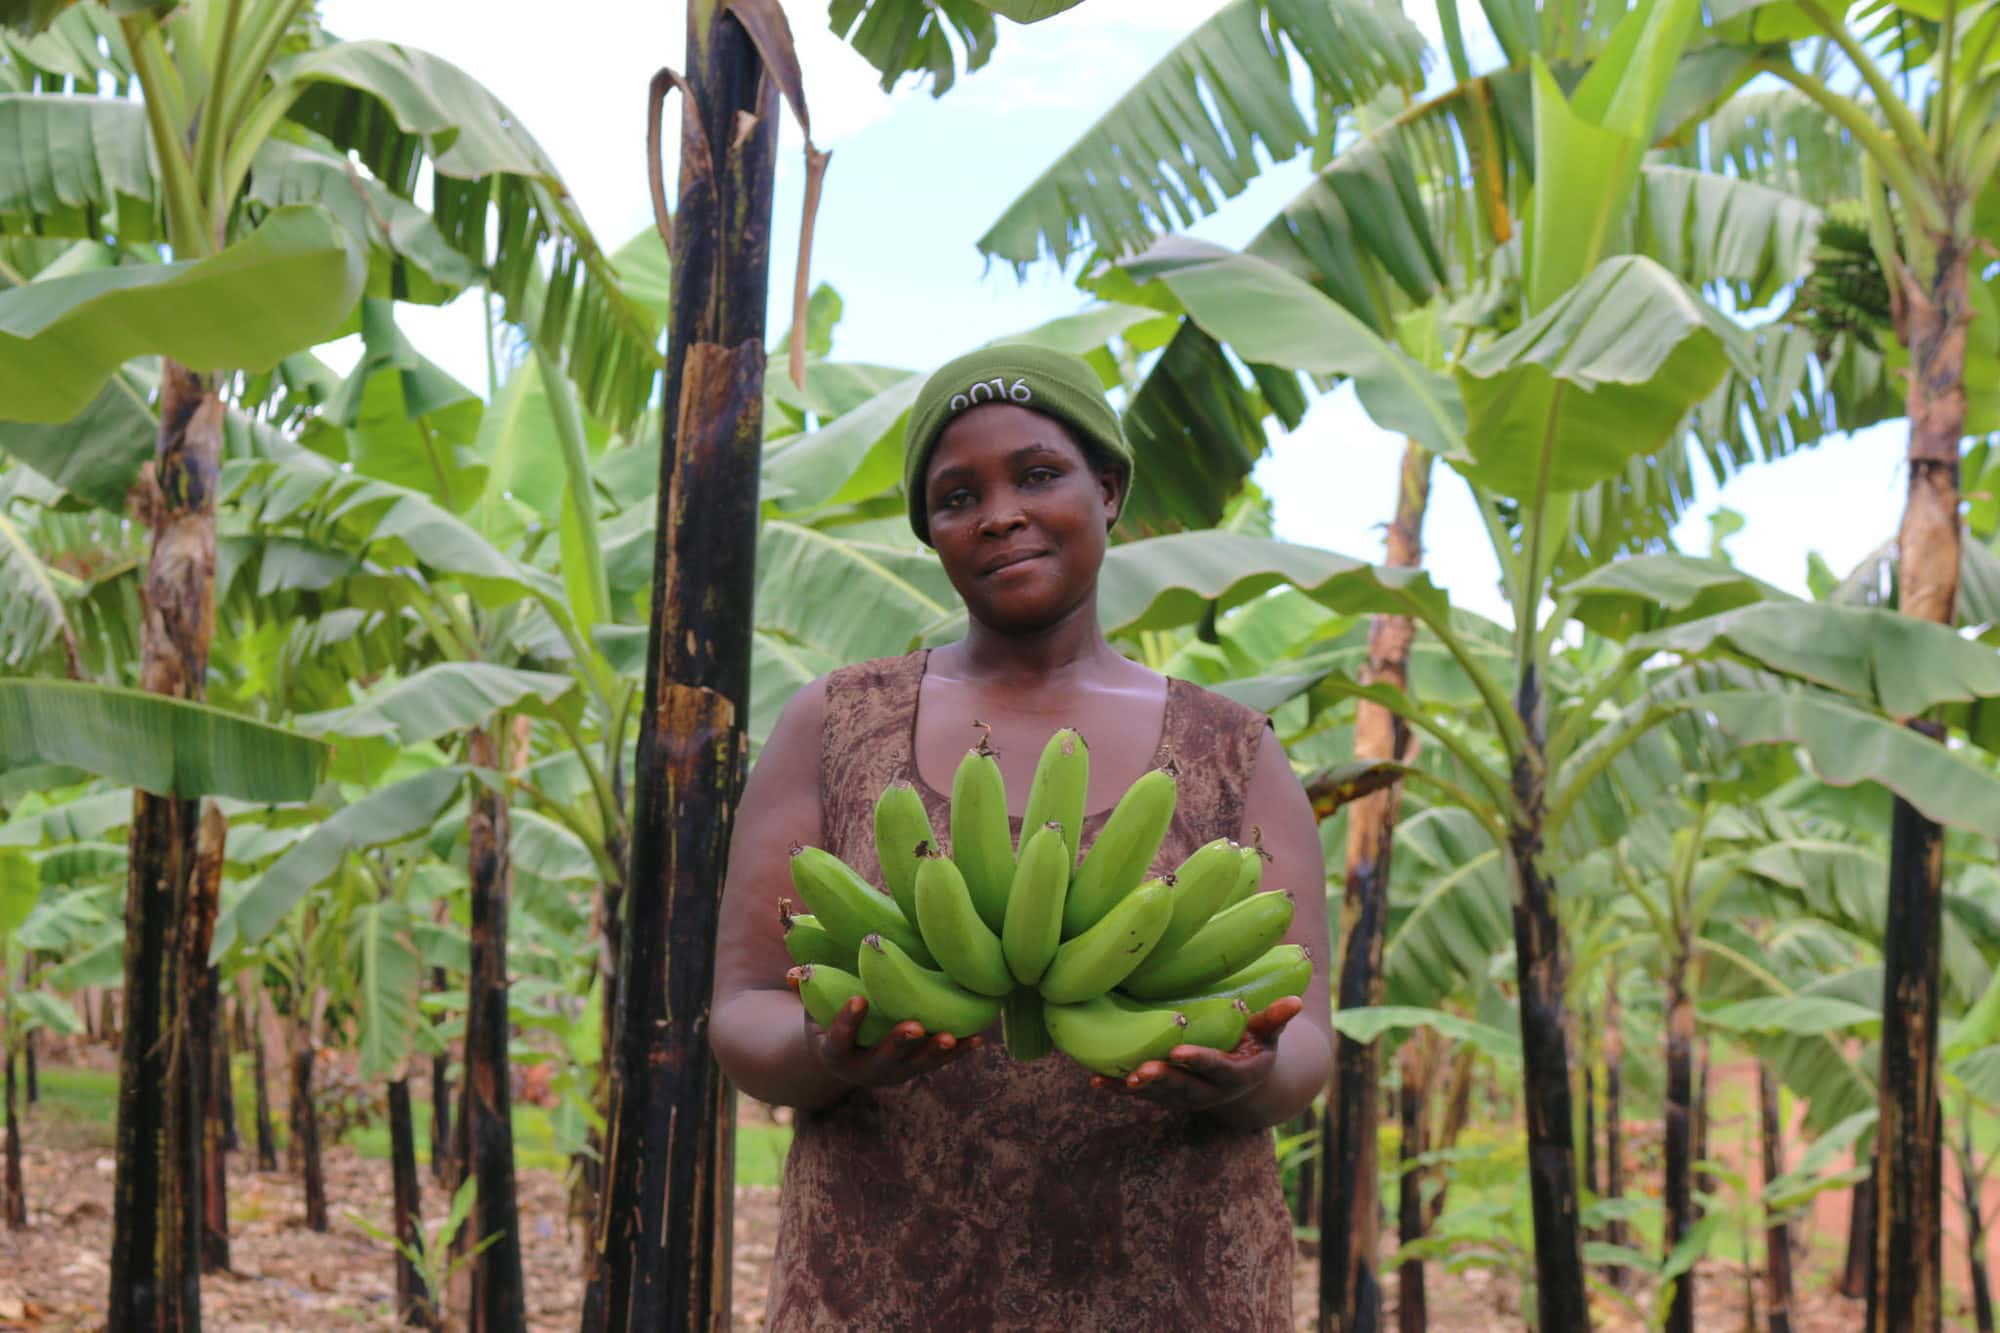 Female banana exporter